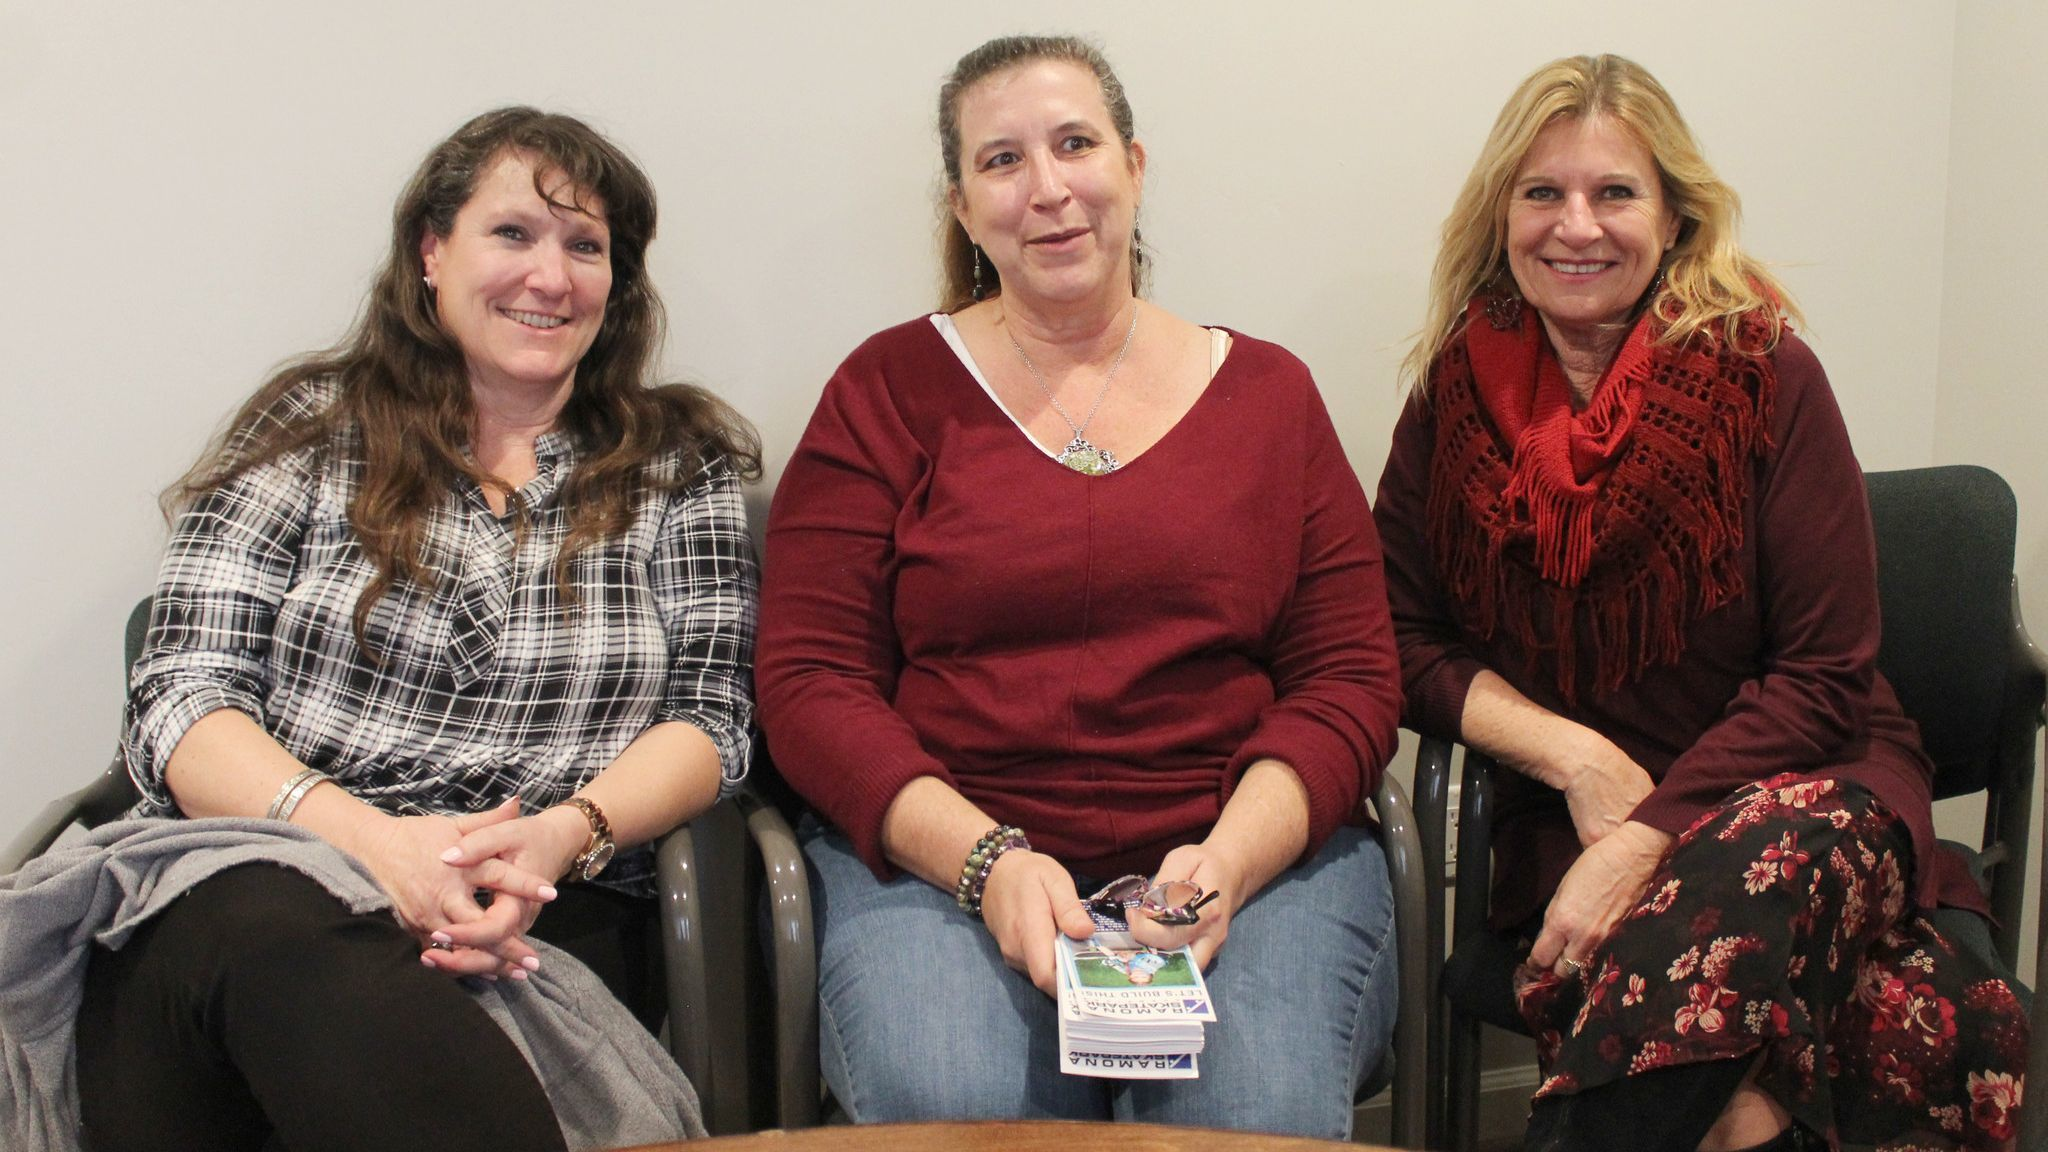 From left, Ramona Parks and Recreation Assoc. Executive Director Dawn Perfect, Ramona Skatepark Champions President Tracy Engel, Ramona Food & Clothes Closet Manager Vesna Curry.